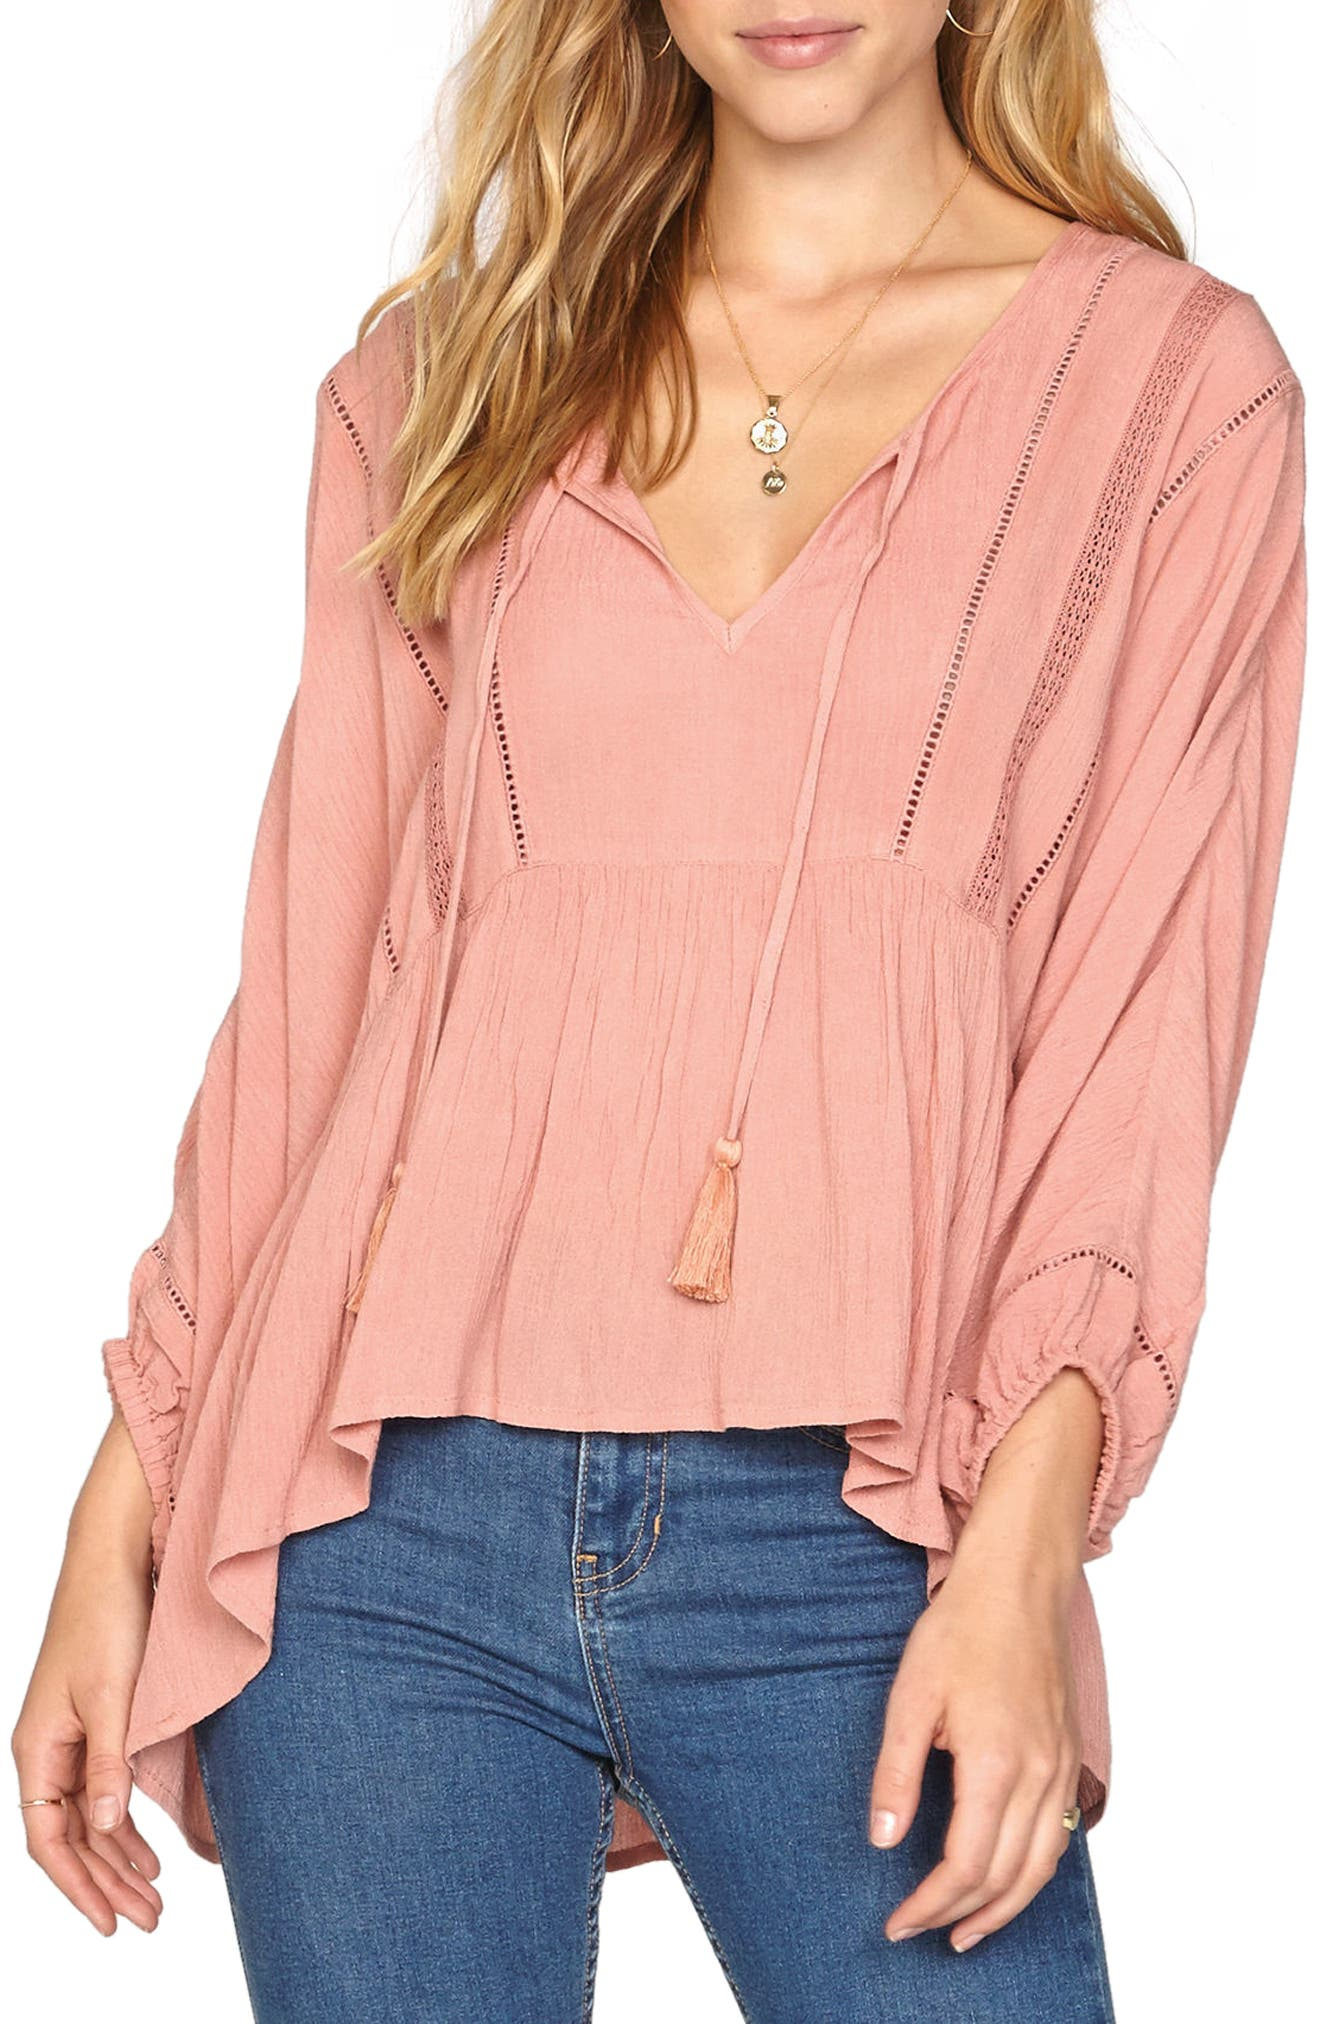 Cool Breeze Woven Top,                         Main,                         color, Rose Dawn